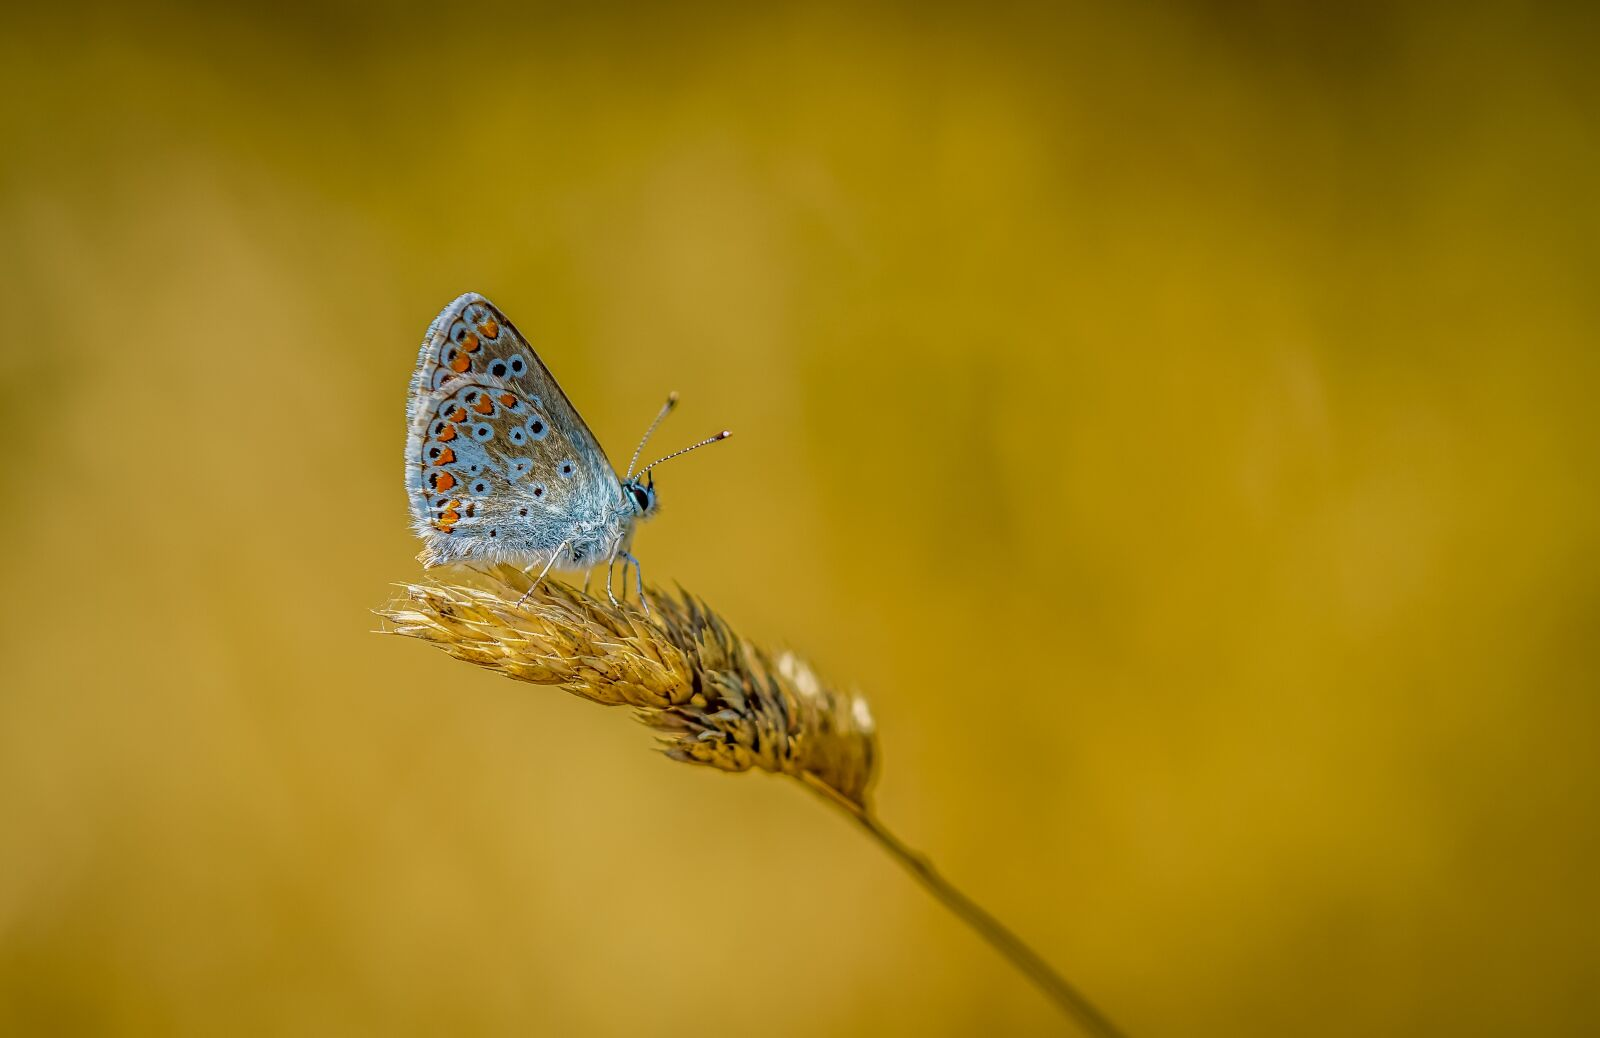 """Sony a6000 sample photo. """"Butterfly, summer, nature"""" photography"""